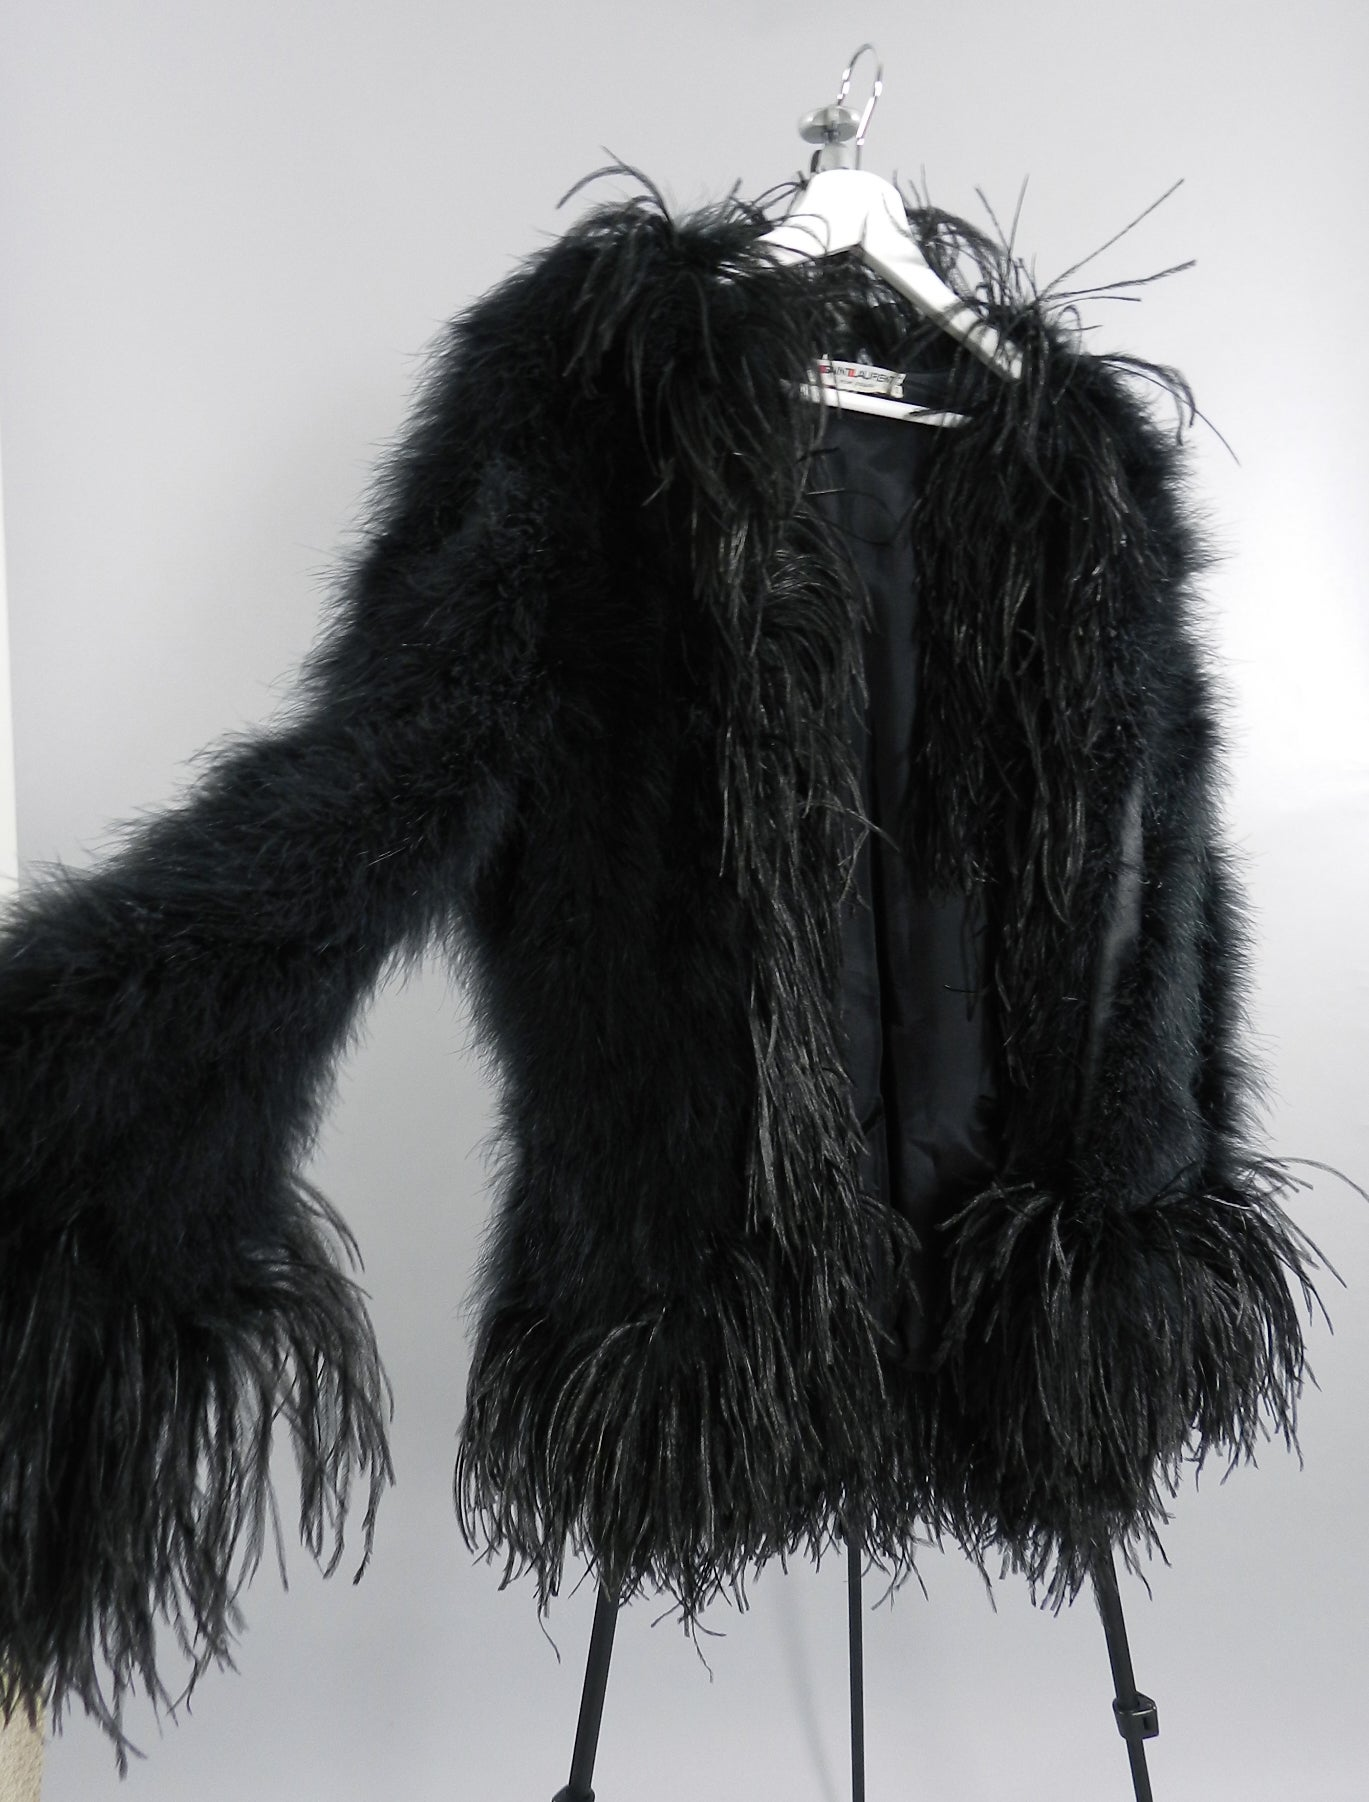 0b1c491222a Yves Saint Laurent Vintage 1970's Maribou and Ostrich Feather Glam Jacket  at 1stdibs